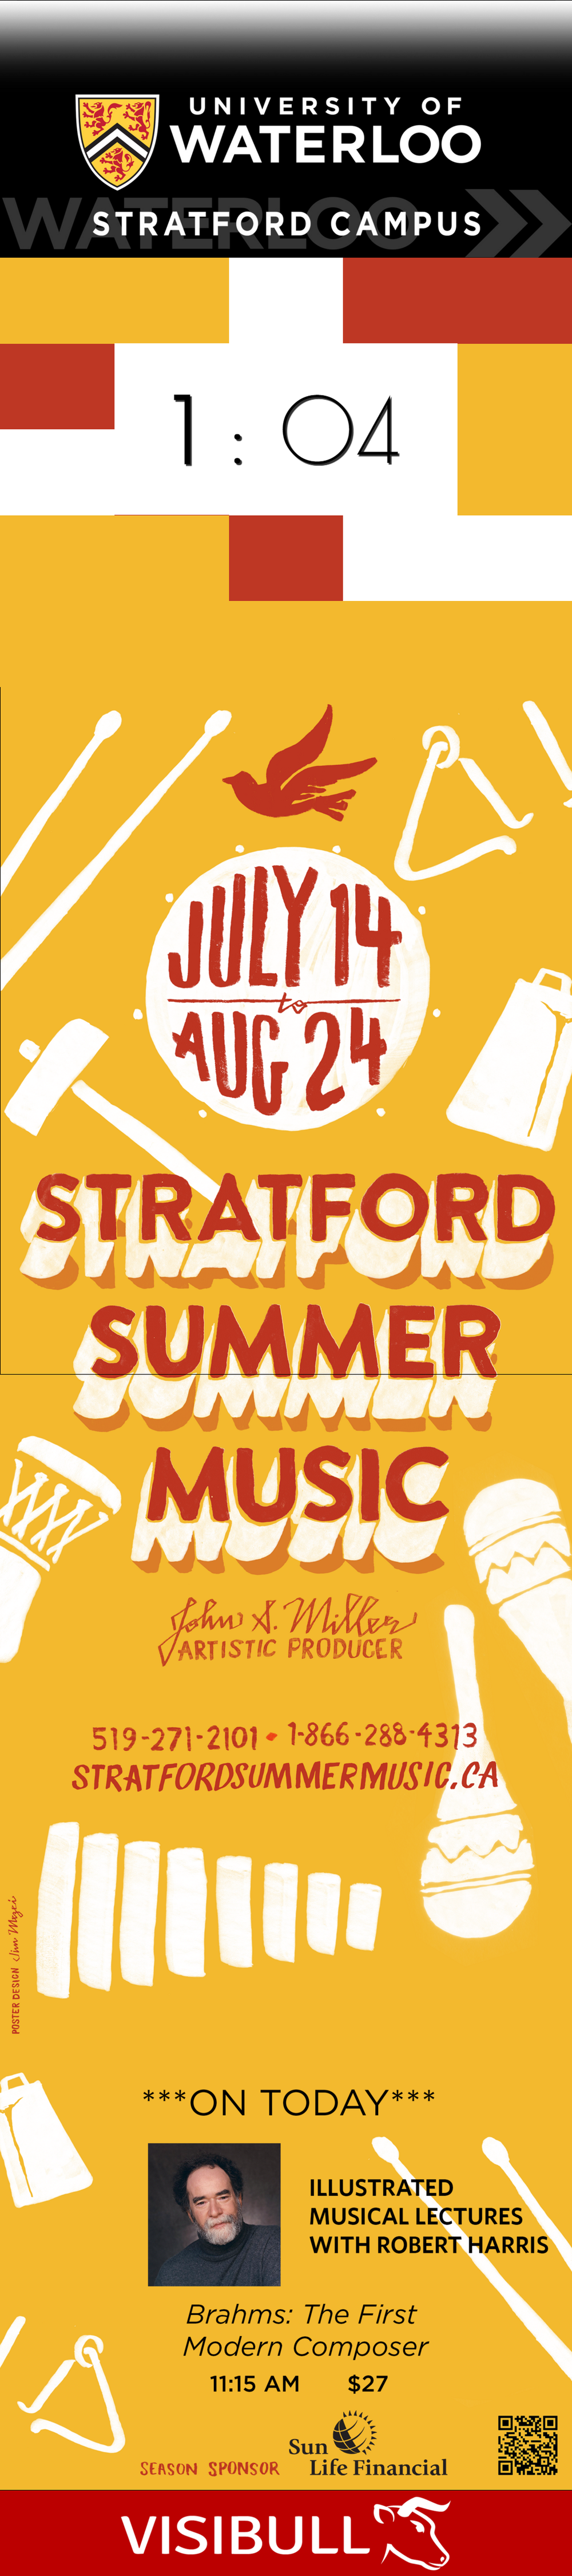 stratSummerMusic2014.png